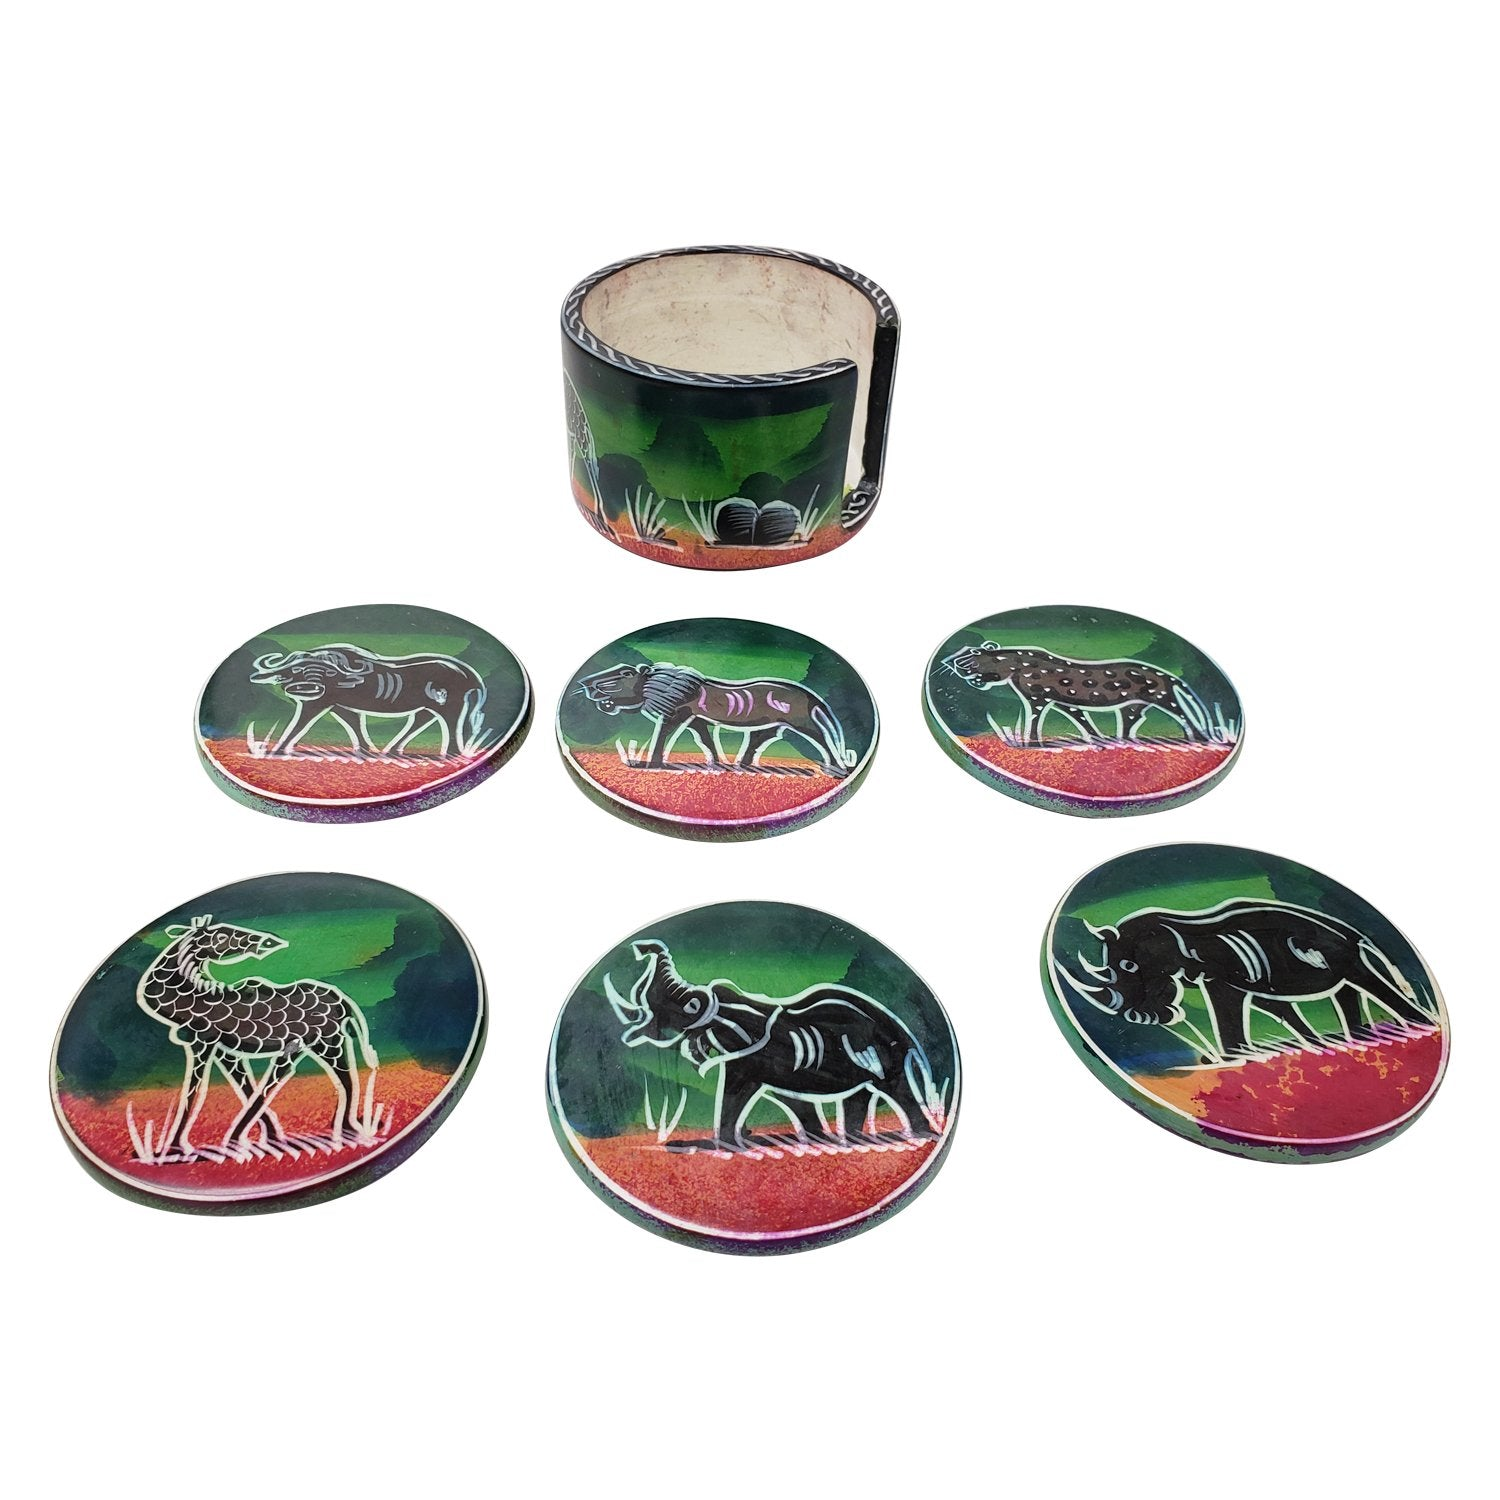 Serengeti at Sunset: Authentic African Hand Made Soapstone Coasters by Boutique Africa